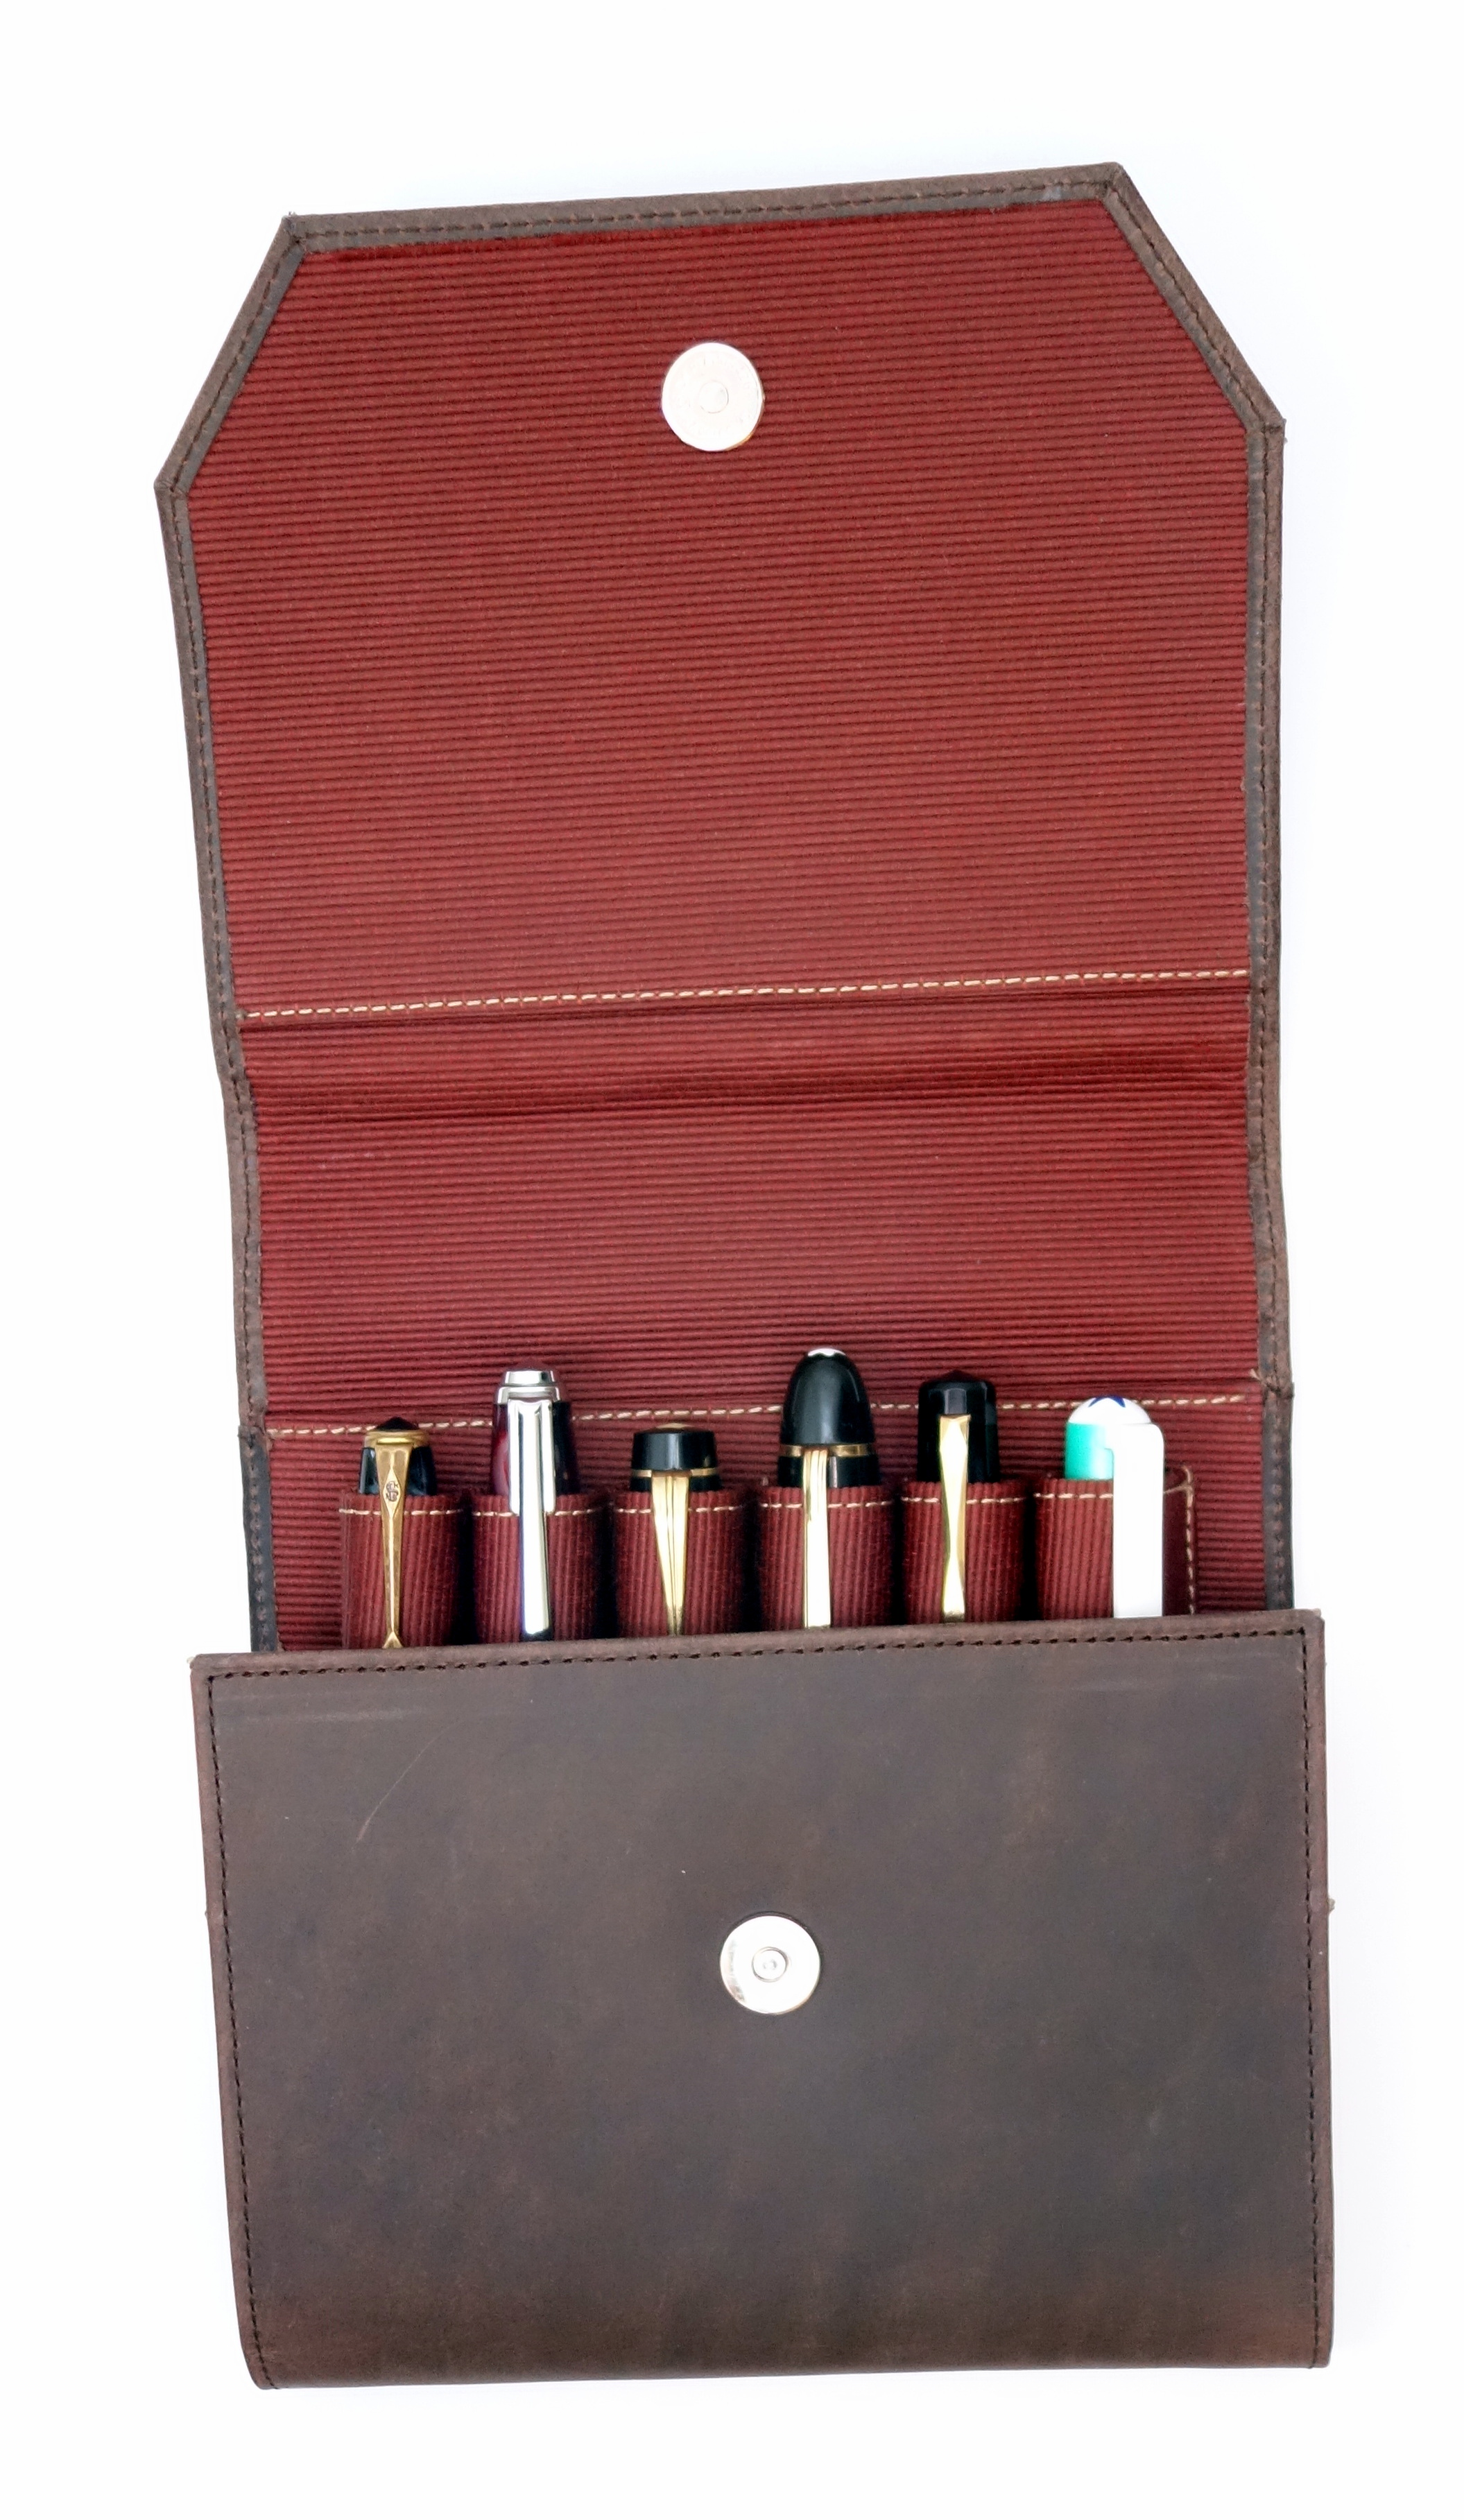 Franklin-Christoph Penvelope Six Leather Pen Case